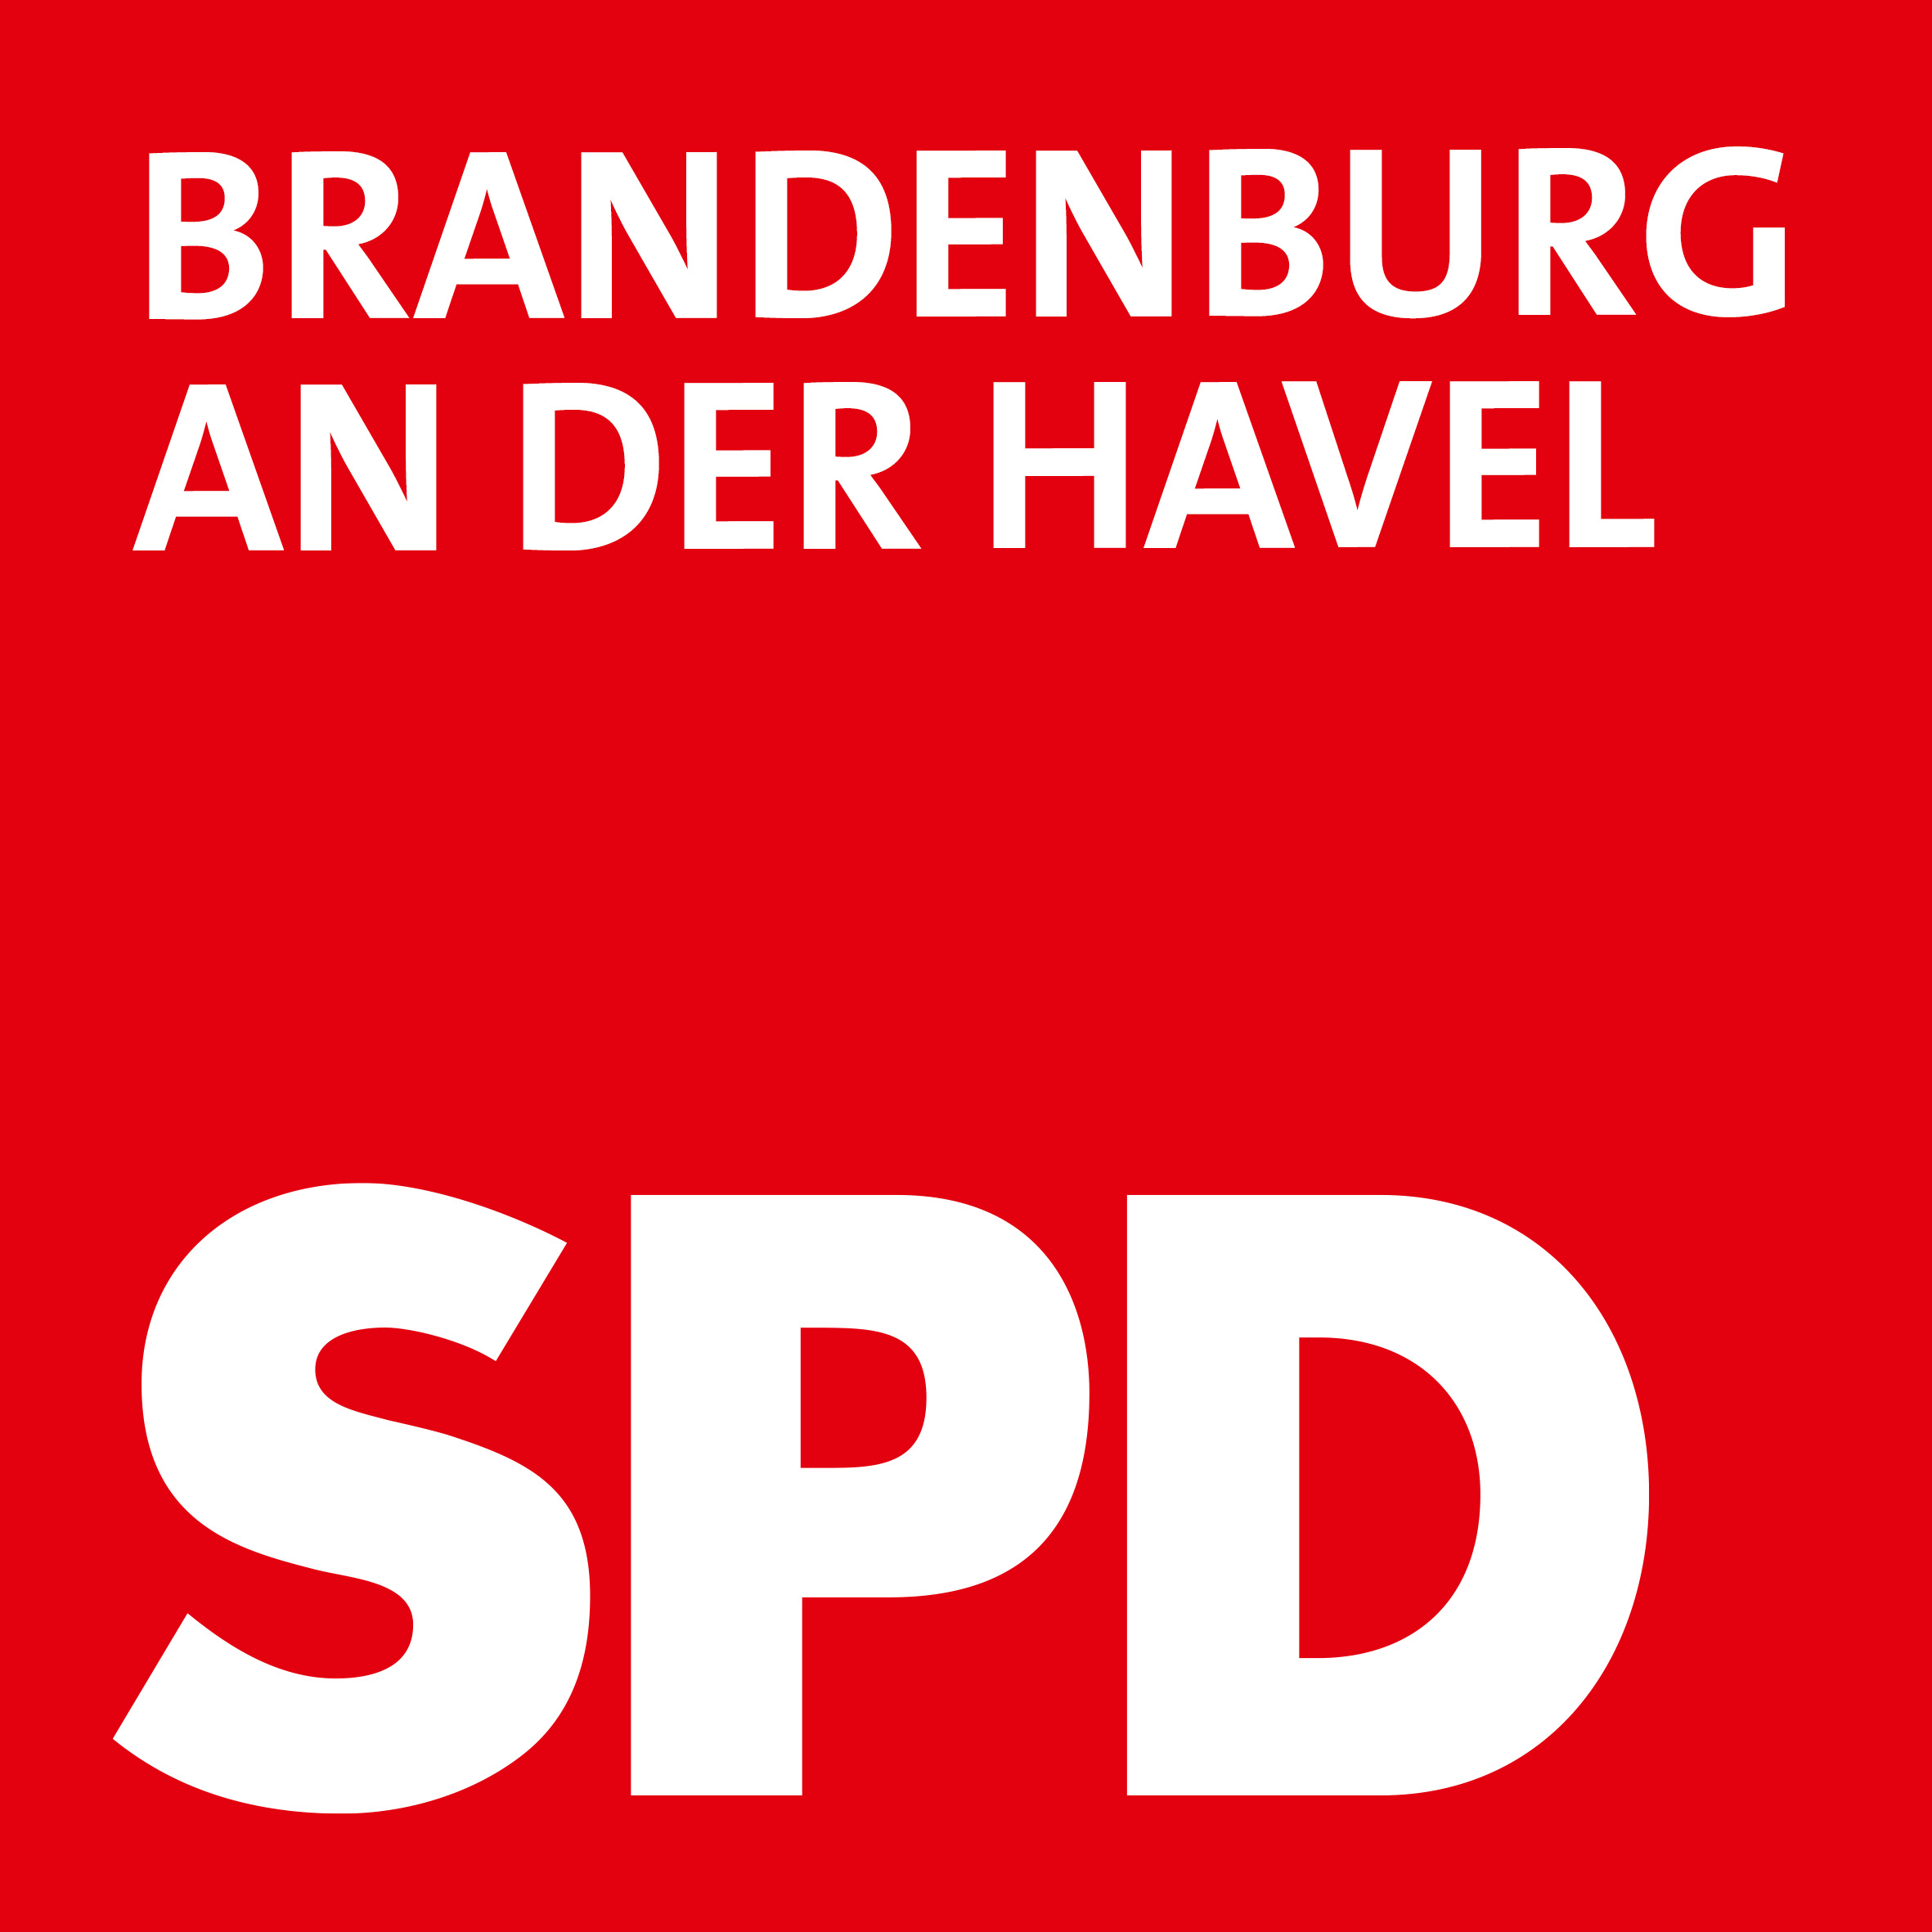 SPD Brandenburg an der Havel